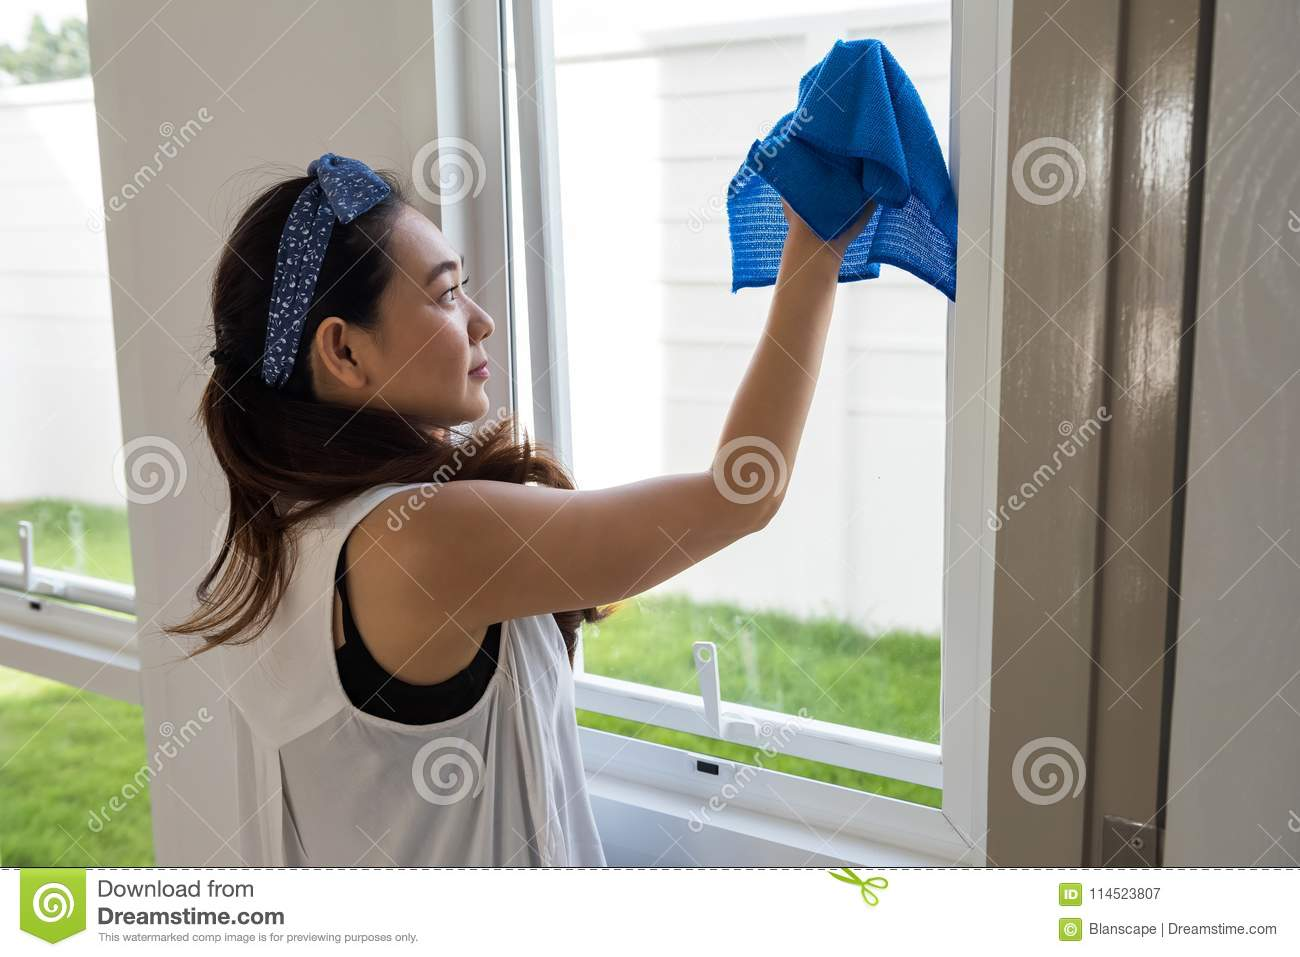 clean window of new house by microfiber fabric